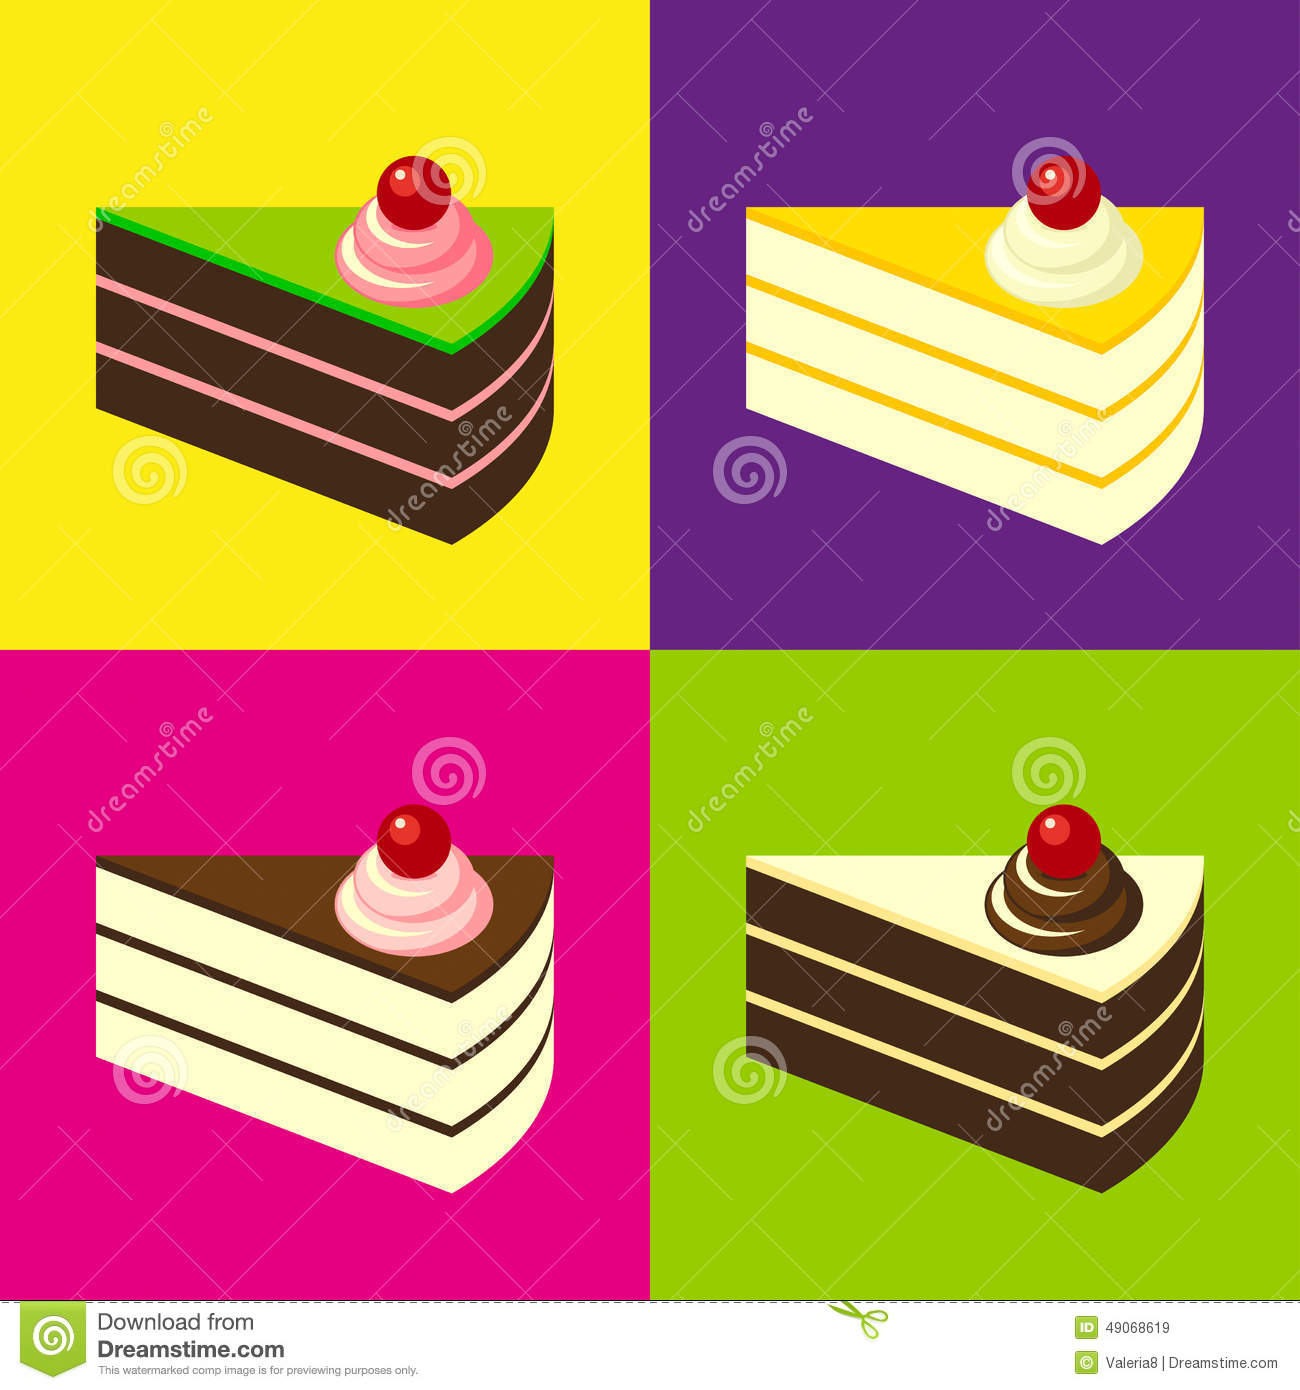 delicious cakes on colourful tiled background pop art style stock illustration image 49068619. Black Bedroom Furniture Sets. Home Design Ideas